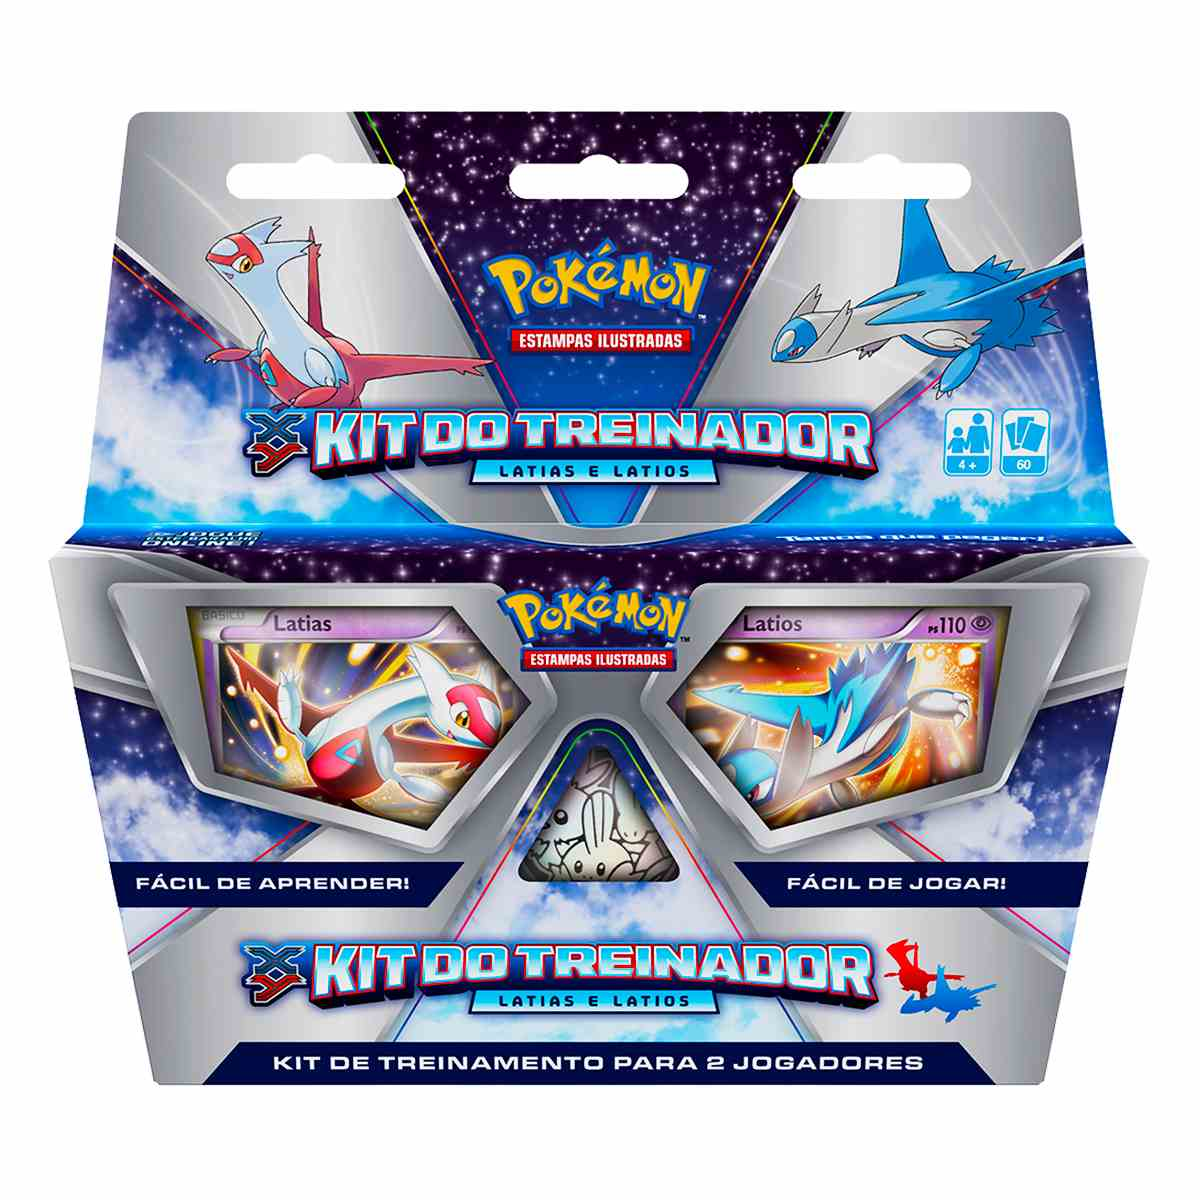 Pokemon Kit do Treinador XY Latias e Latios